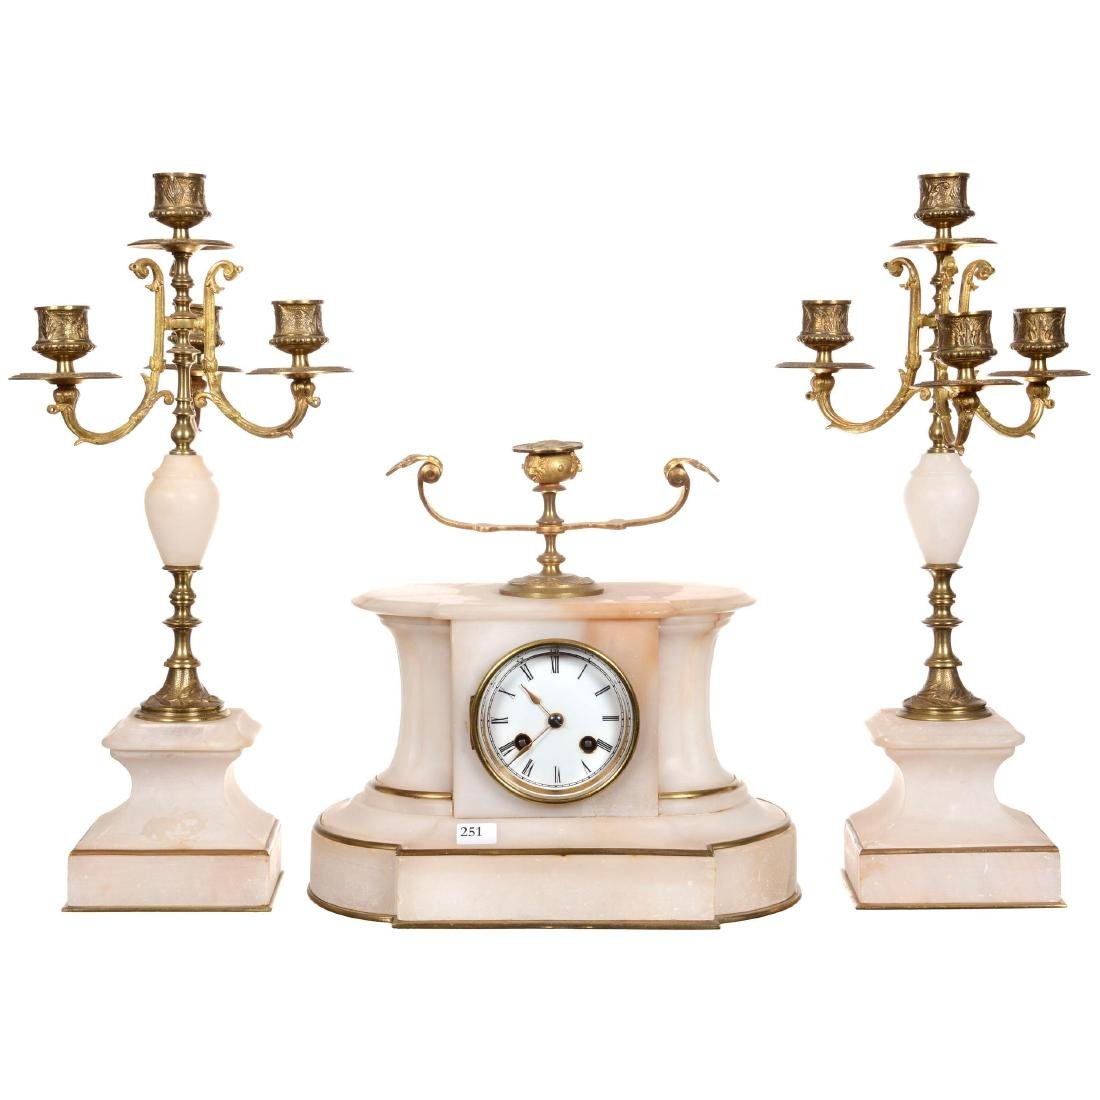 Three Piece Clock Set